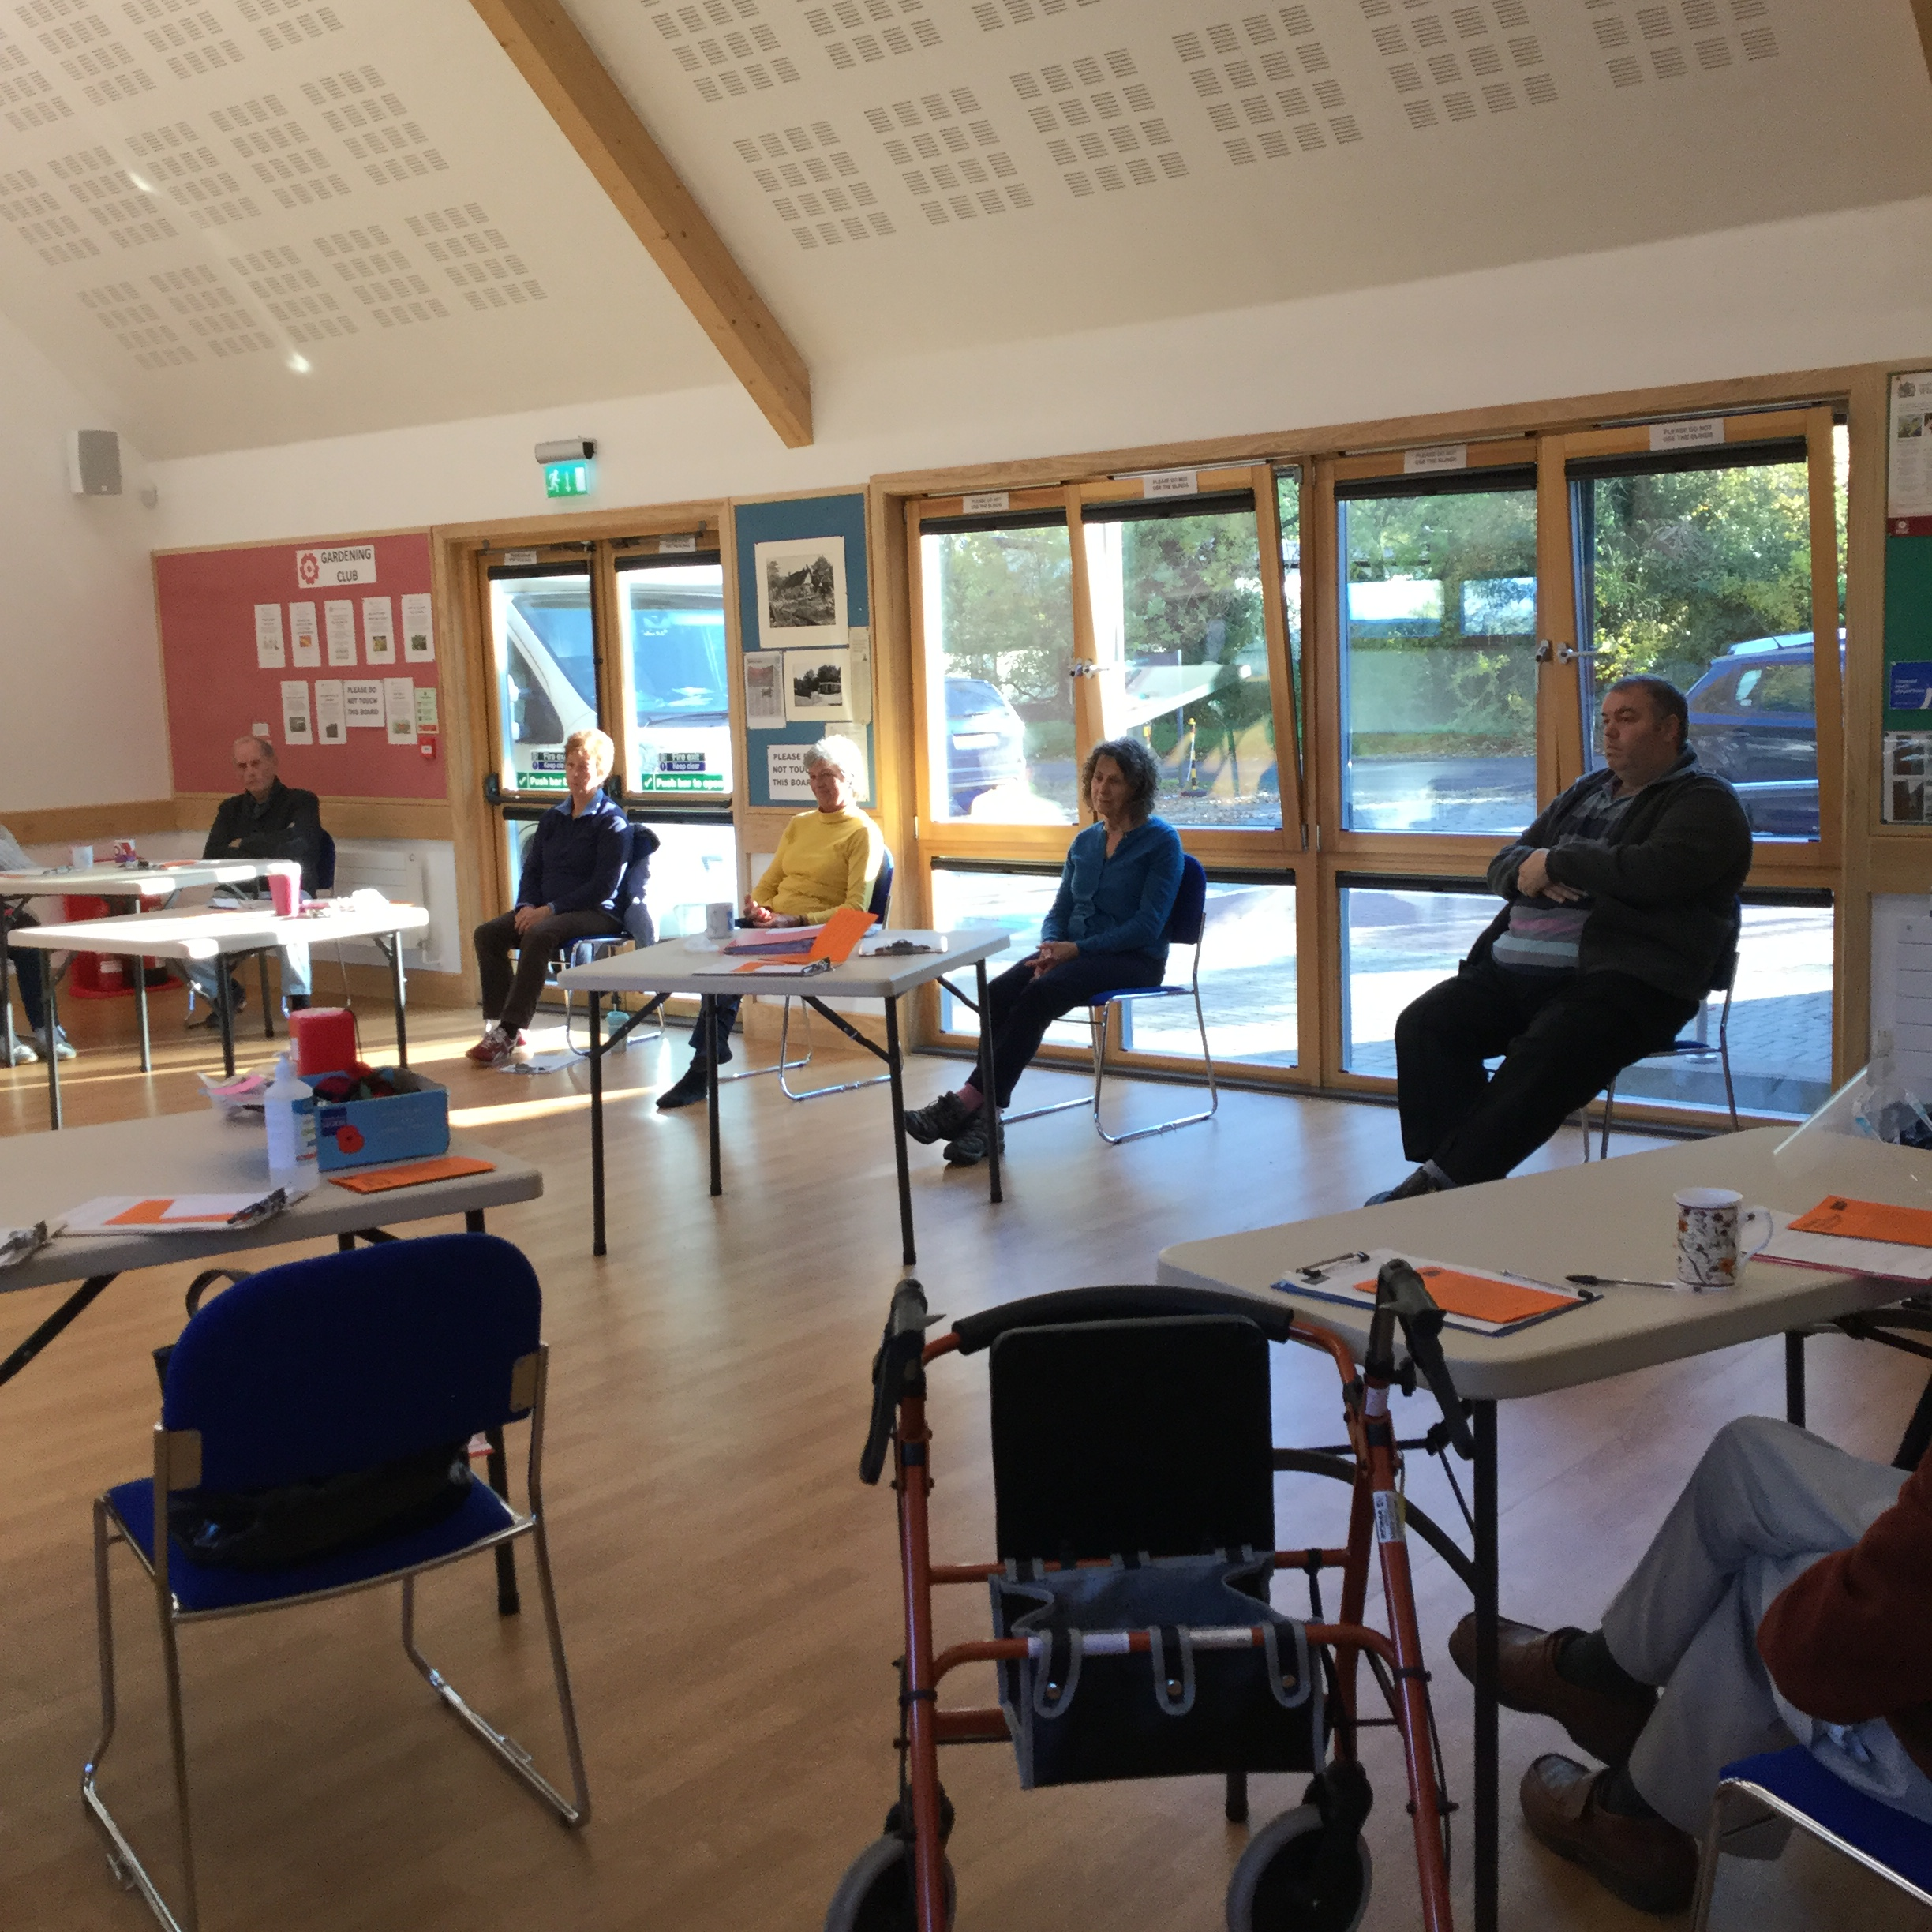 The participants in the session contributed to an Alphabet Poem about all the things that make Westhorpe special